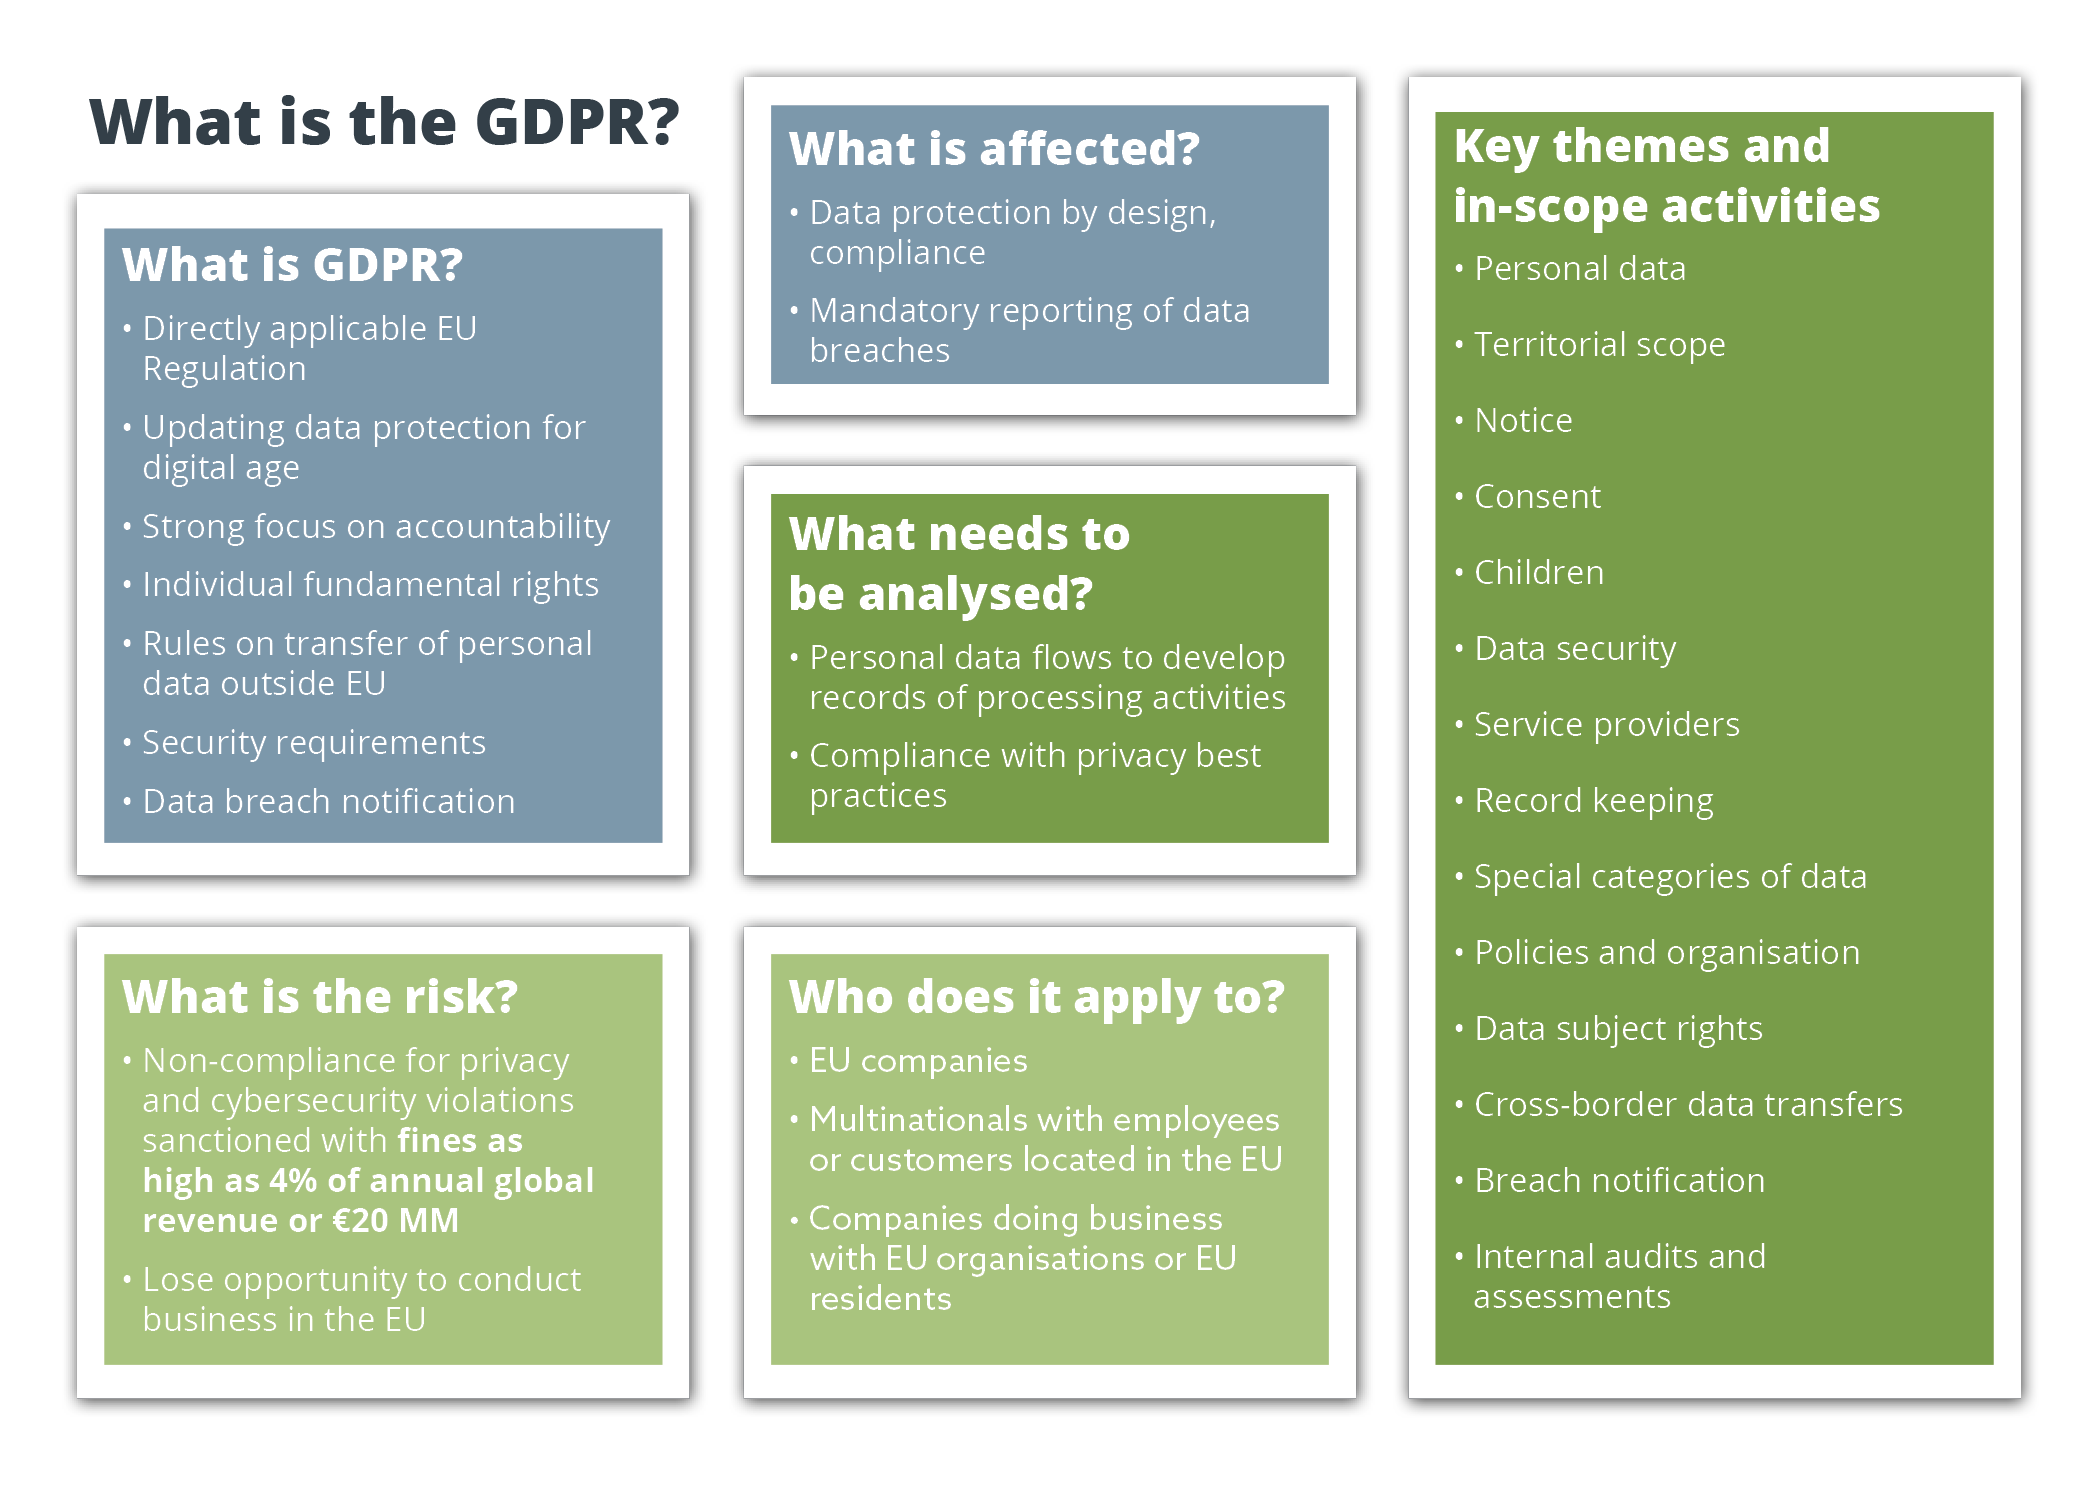 What is the GDPR?